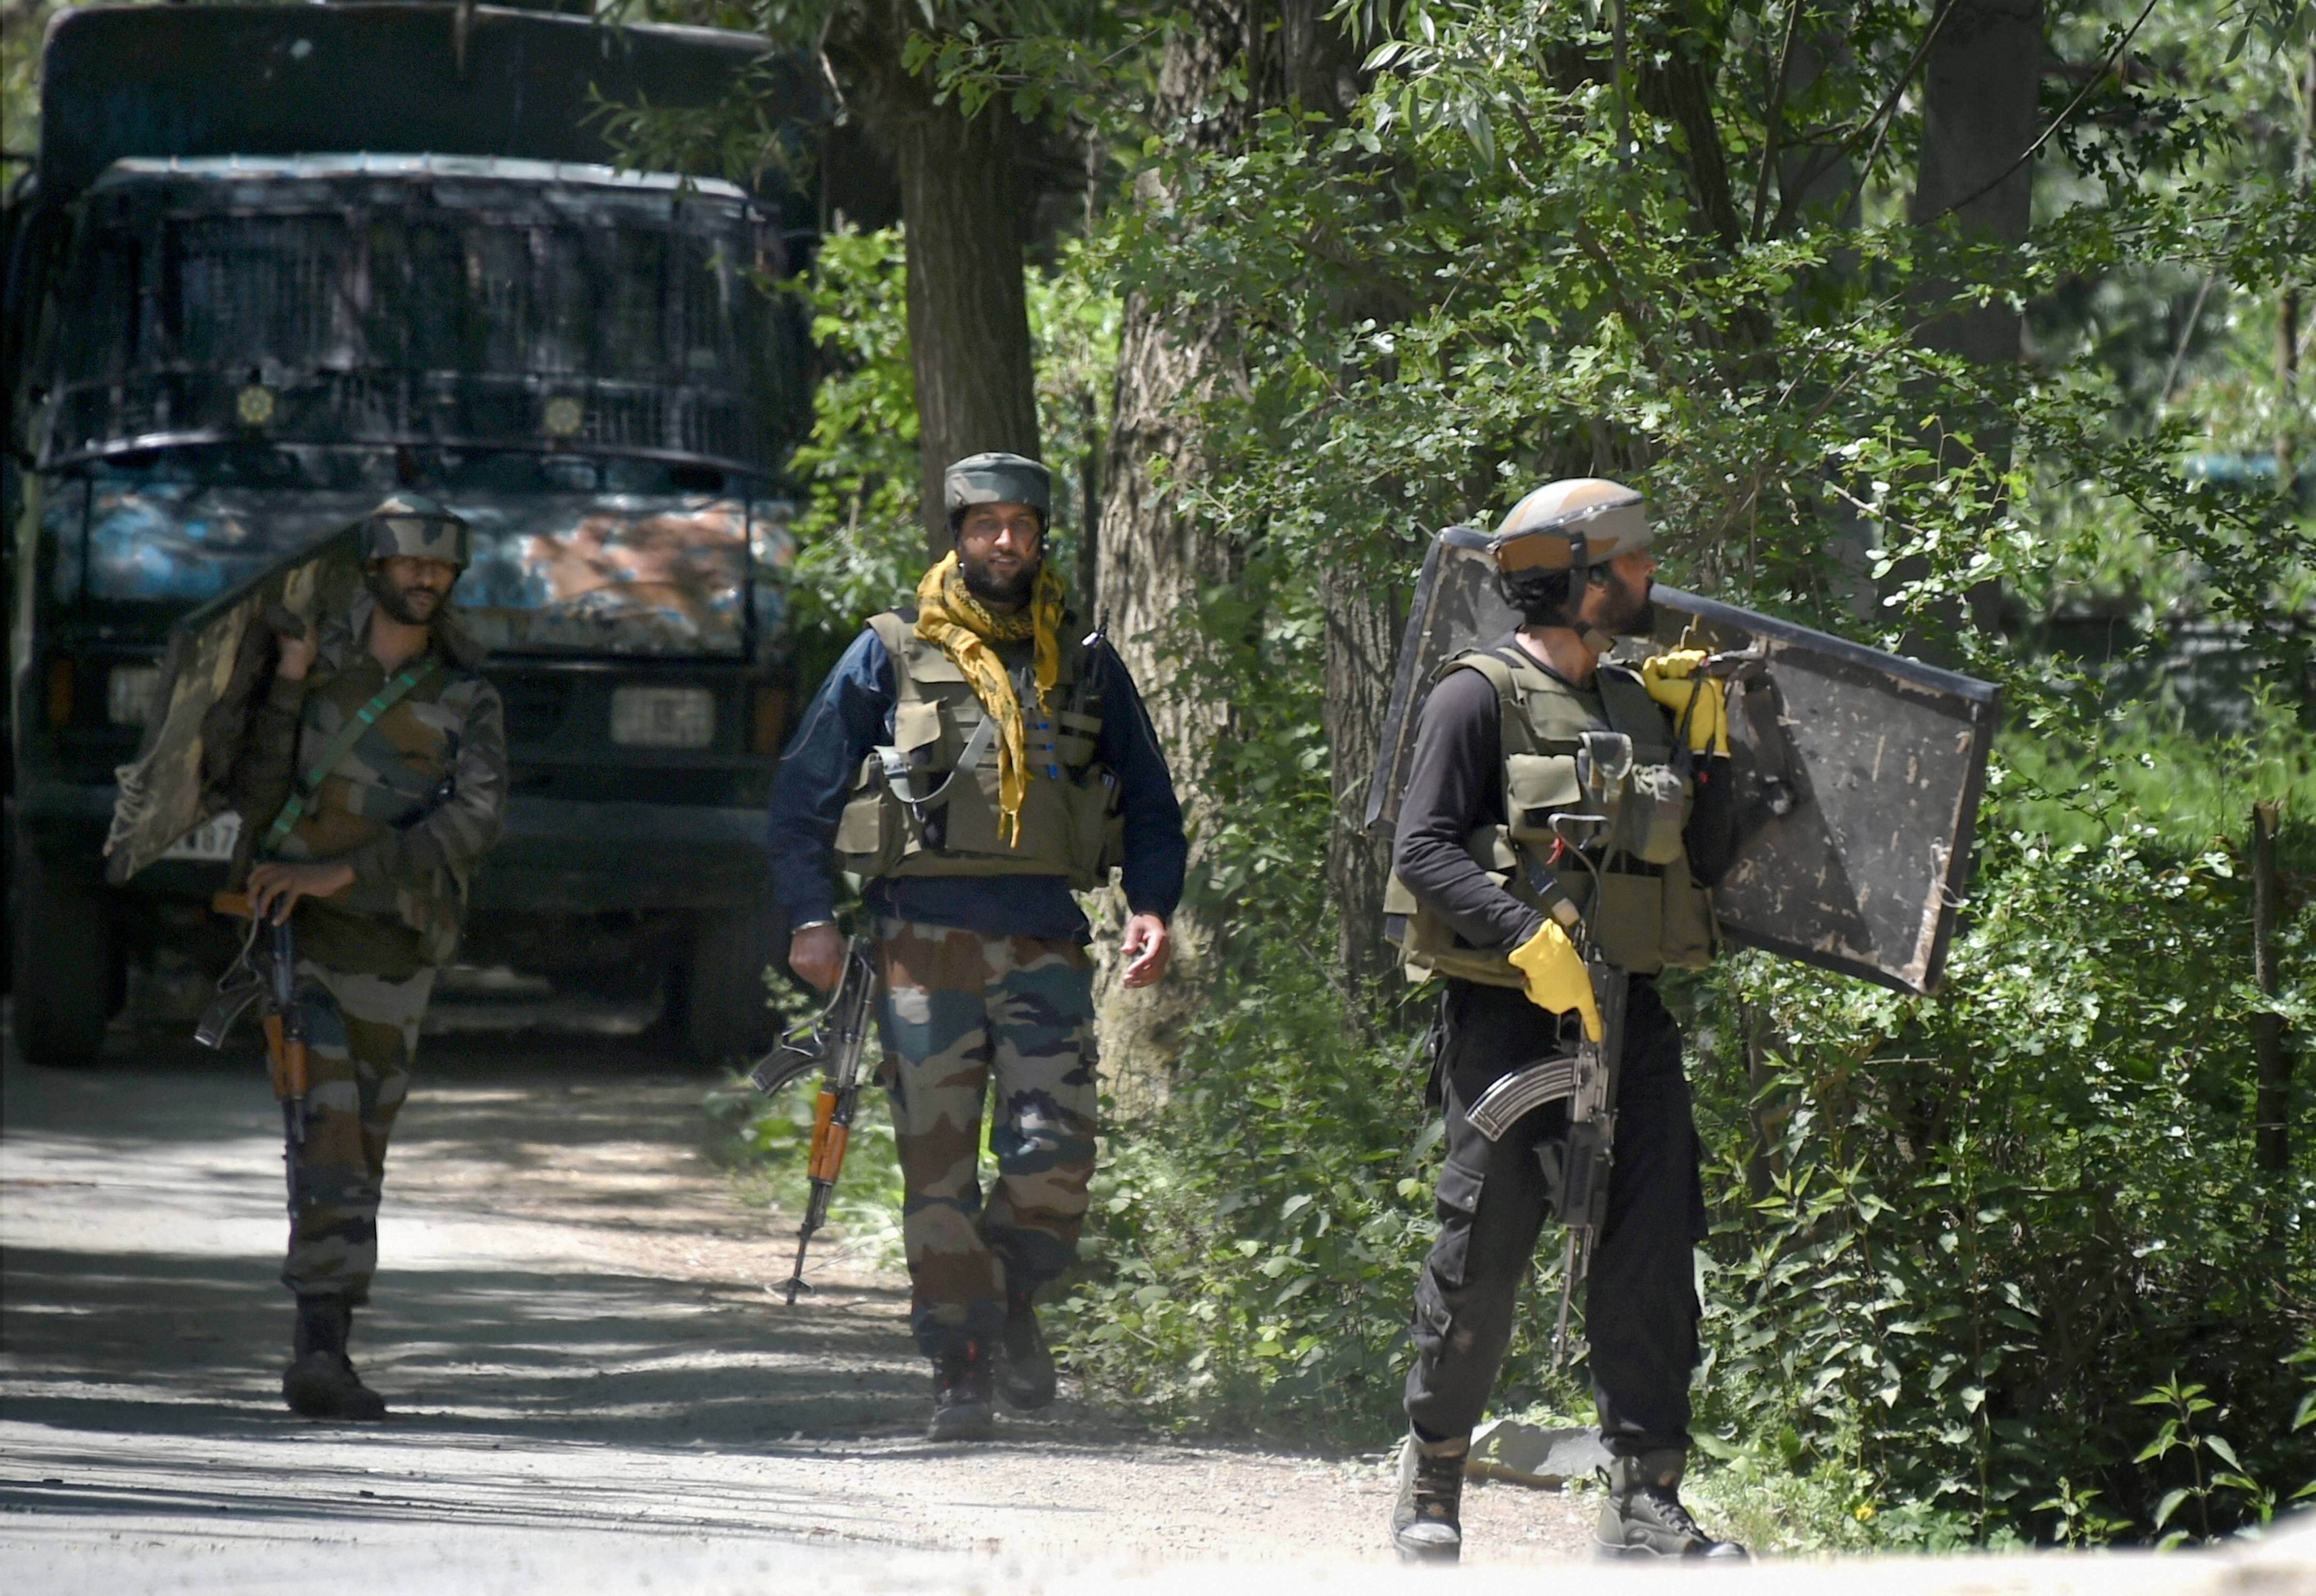 Soldiers during an encounter with militants at Beighpora area in Pulwama on May 6, 2020.